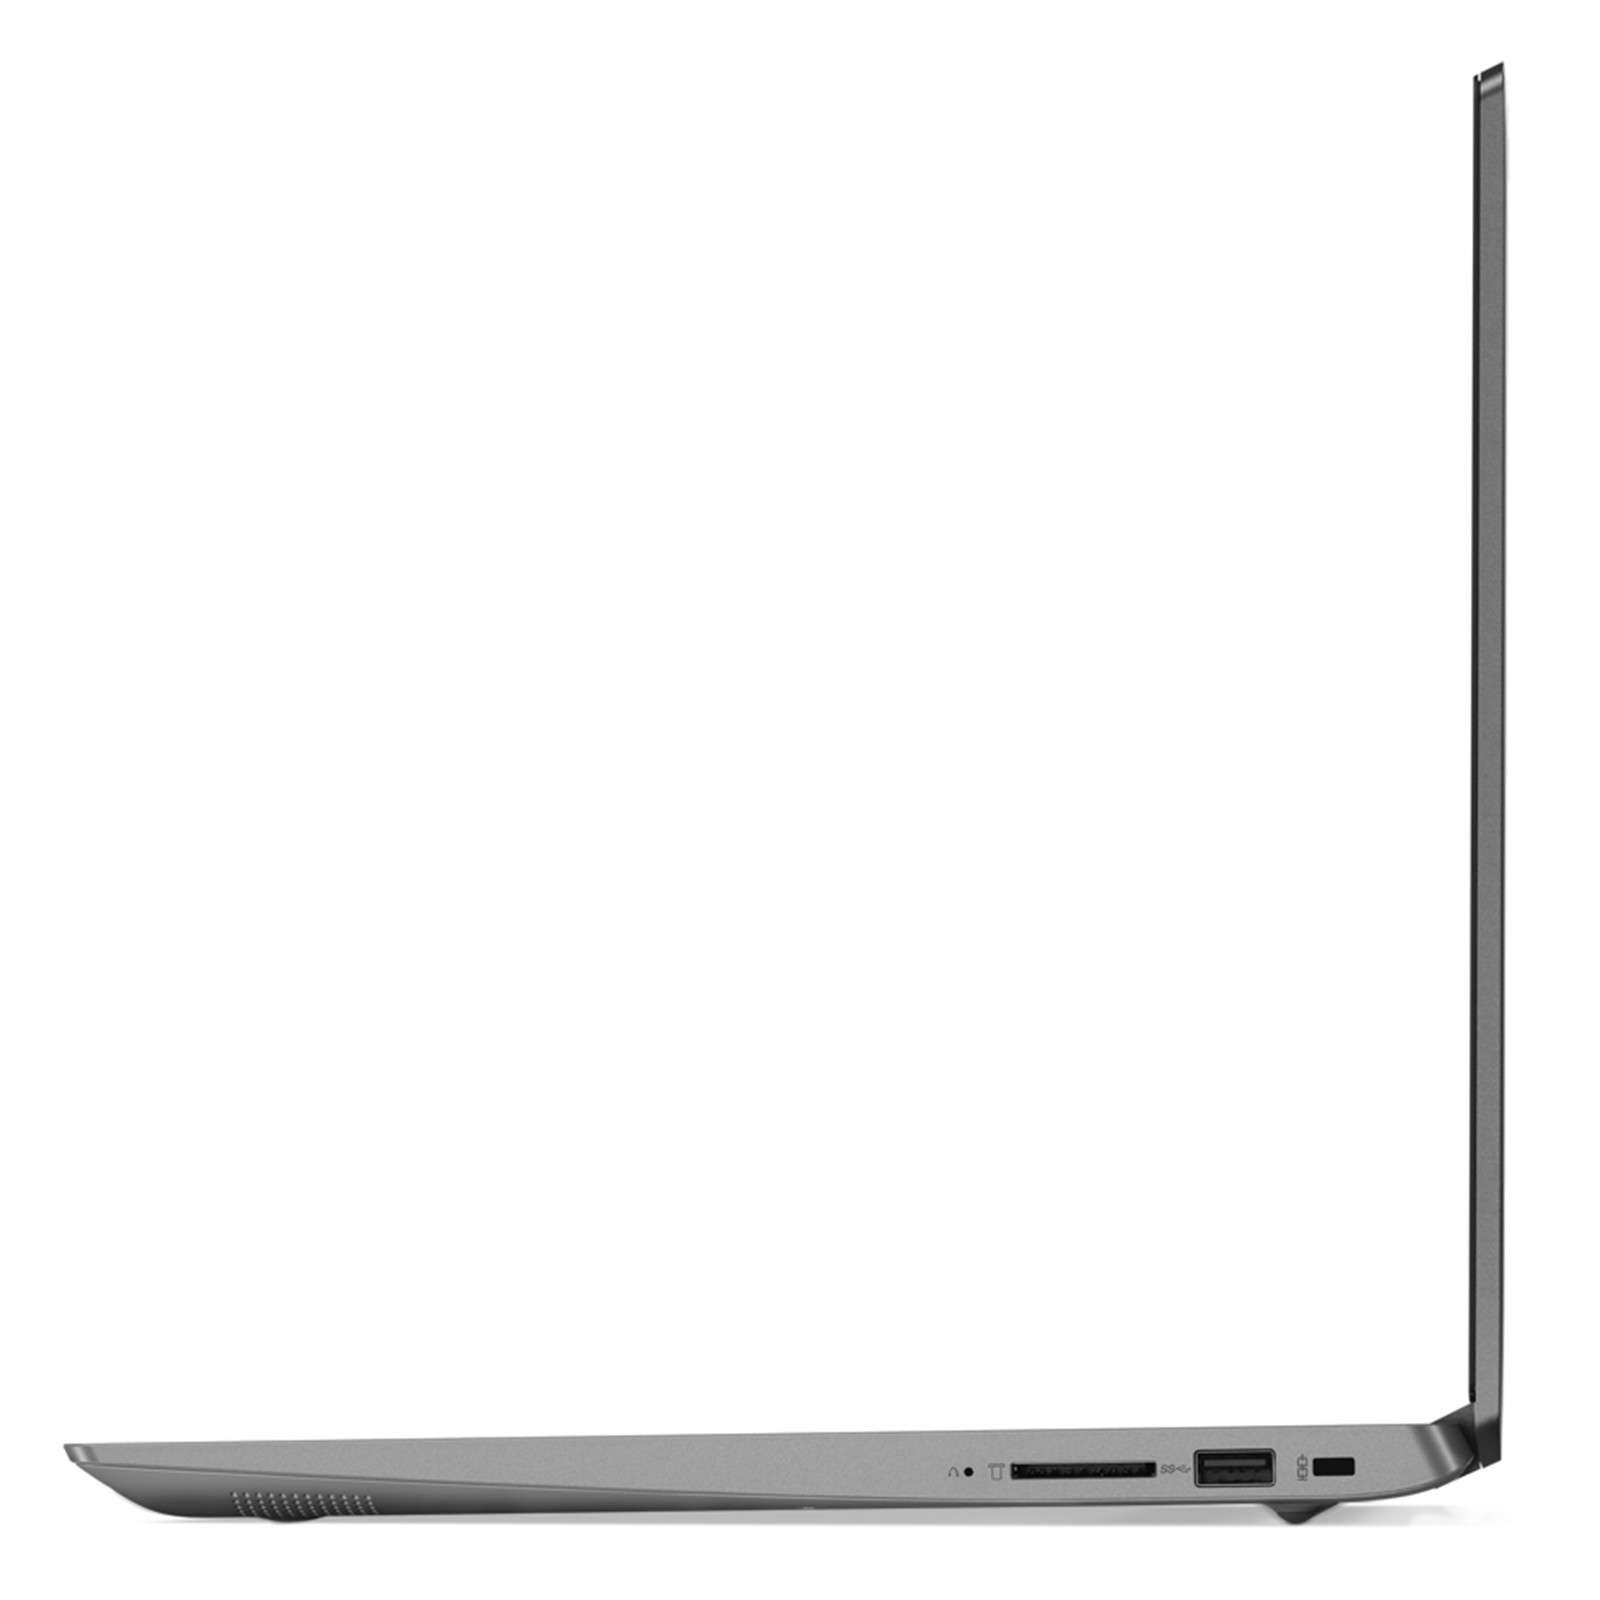 "Lenovo IdeaPad 330s Laptop 15 6"" Intel i5 8250u 20GB Memory 4GB RAM 16GB IntelOptane 1TB HDD NO DVD Win10Home 64bit 1yr warranty Platinum Grey Colour"